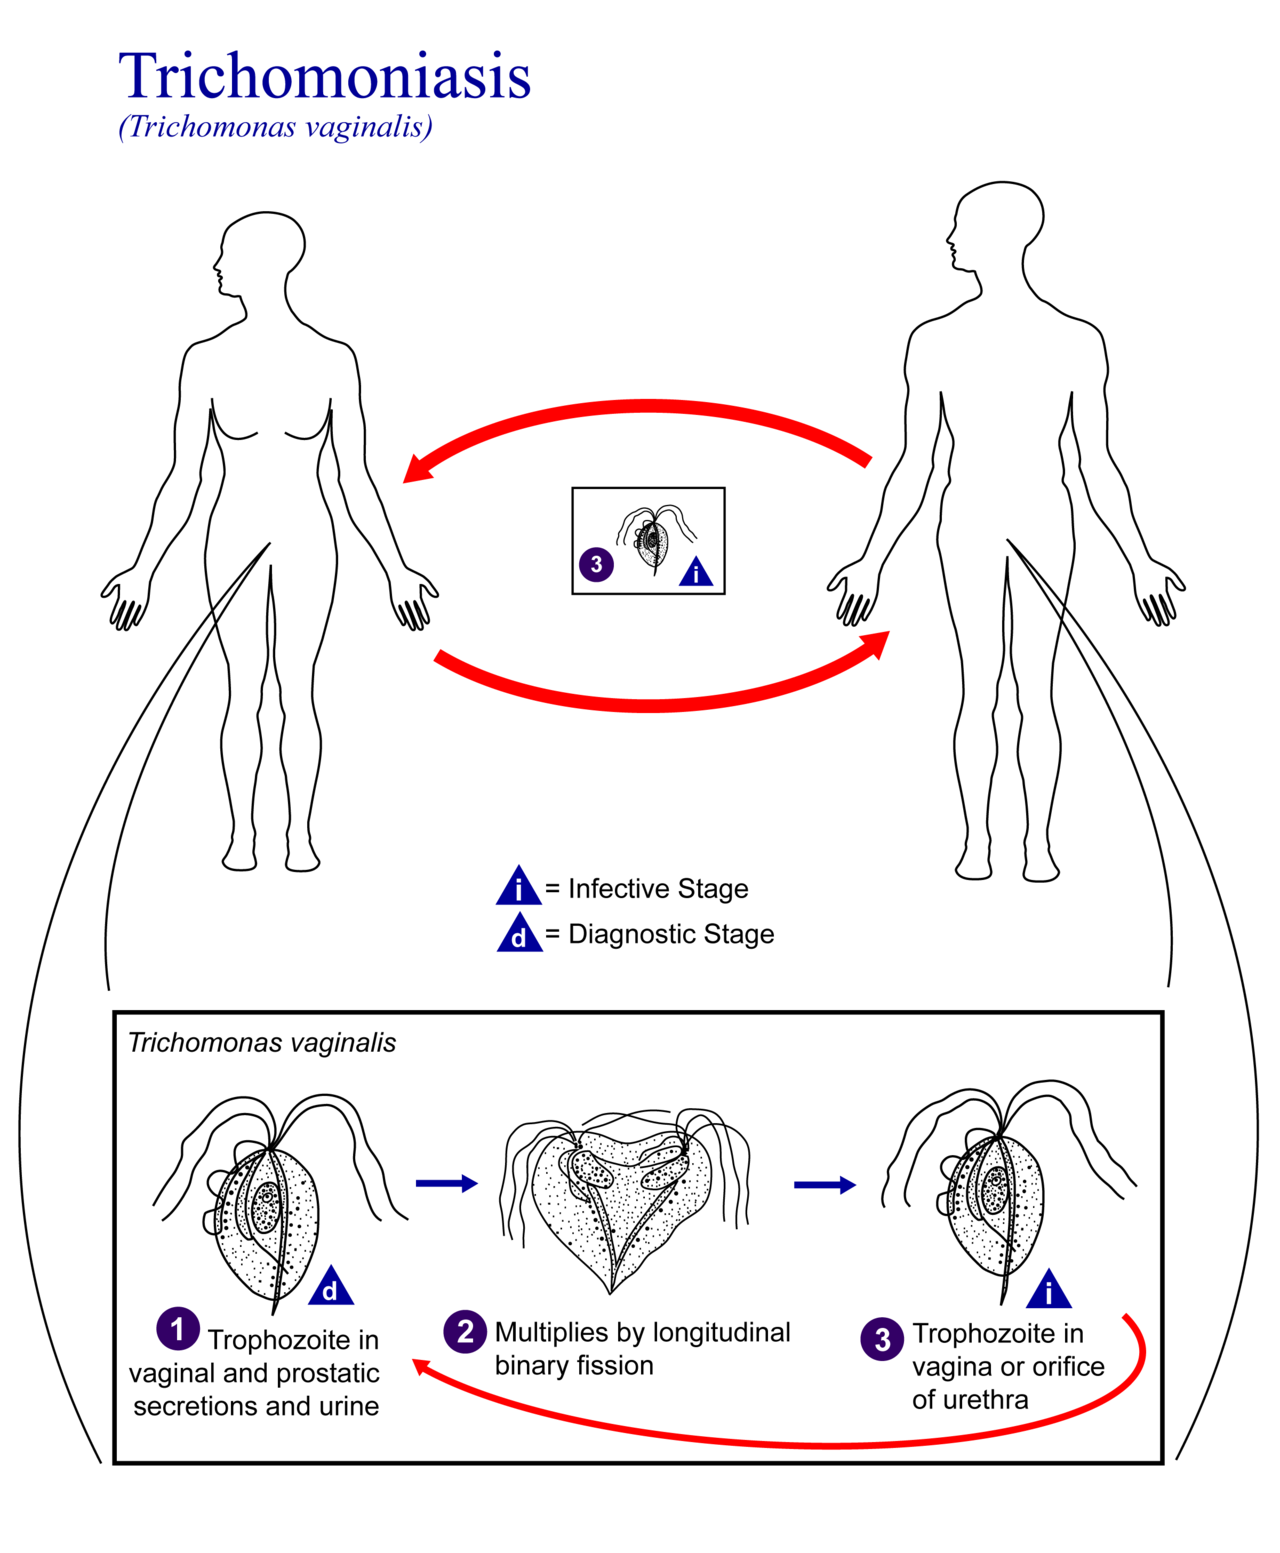 Life cycle of Trichomonas vaginalis (source)